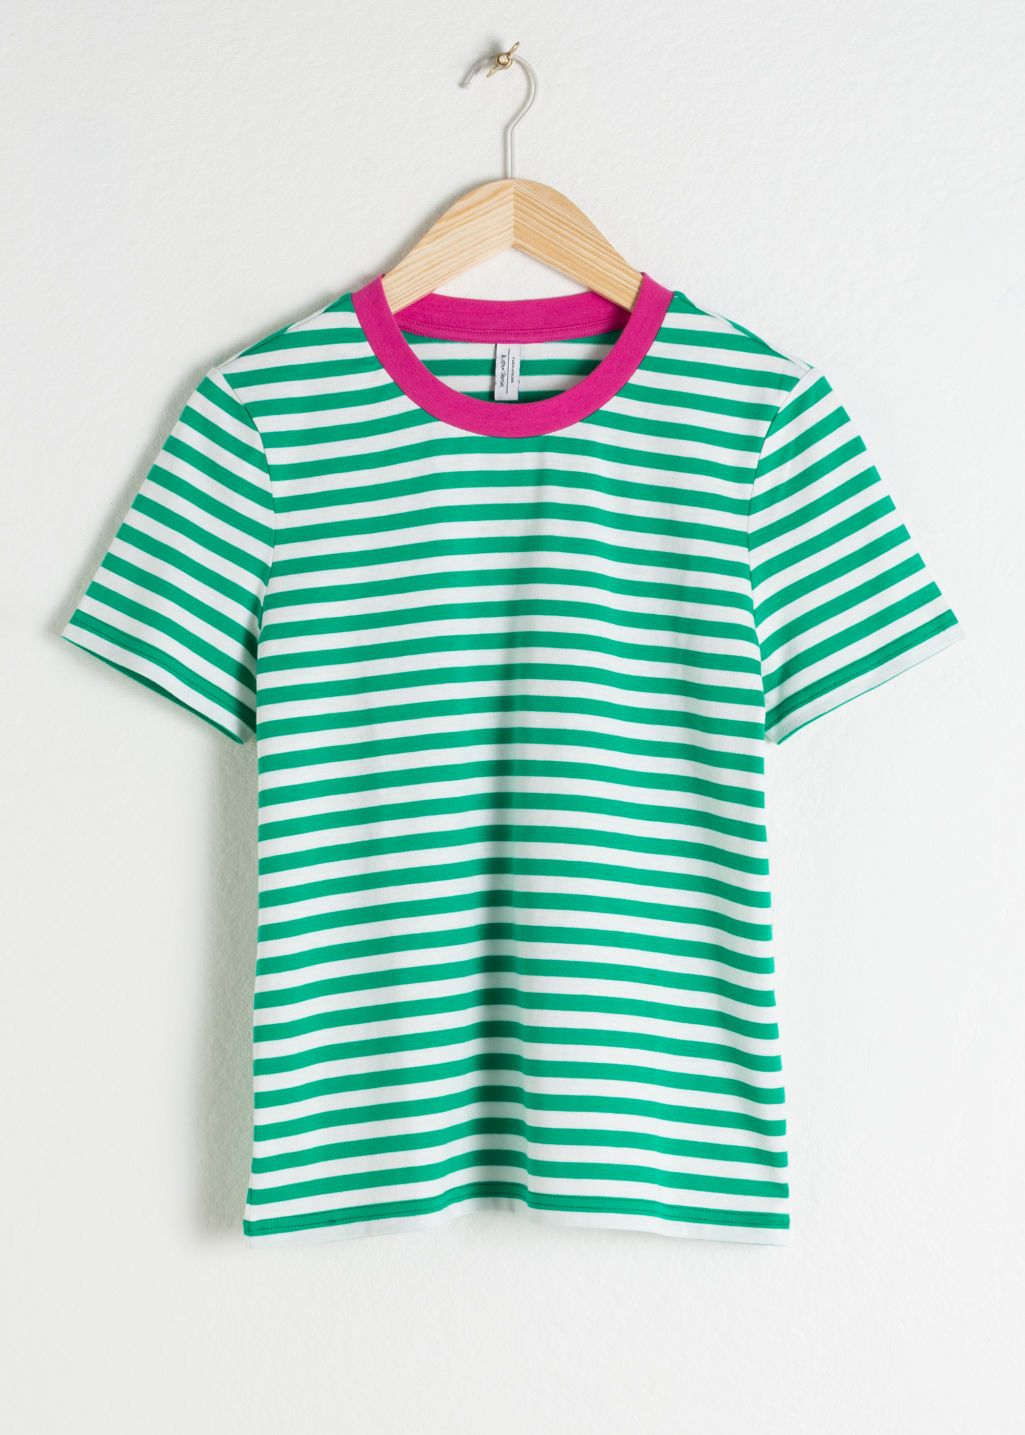 d8efb112f3563d Striped Tee - Green / Pink - Tops & T-shirts - & Other Stories